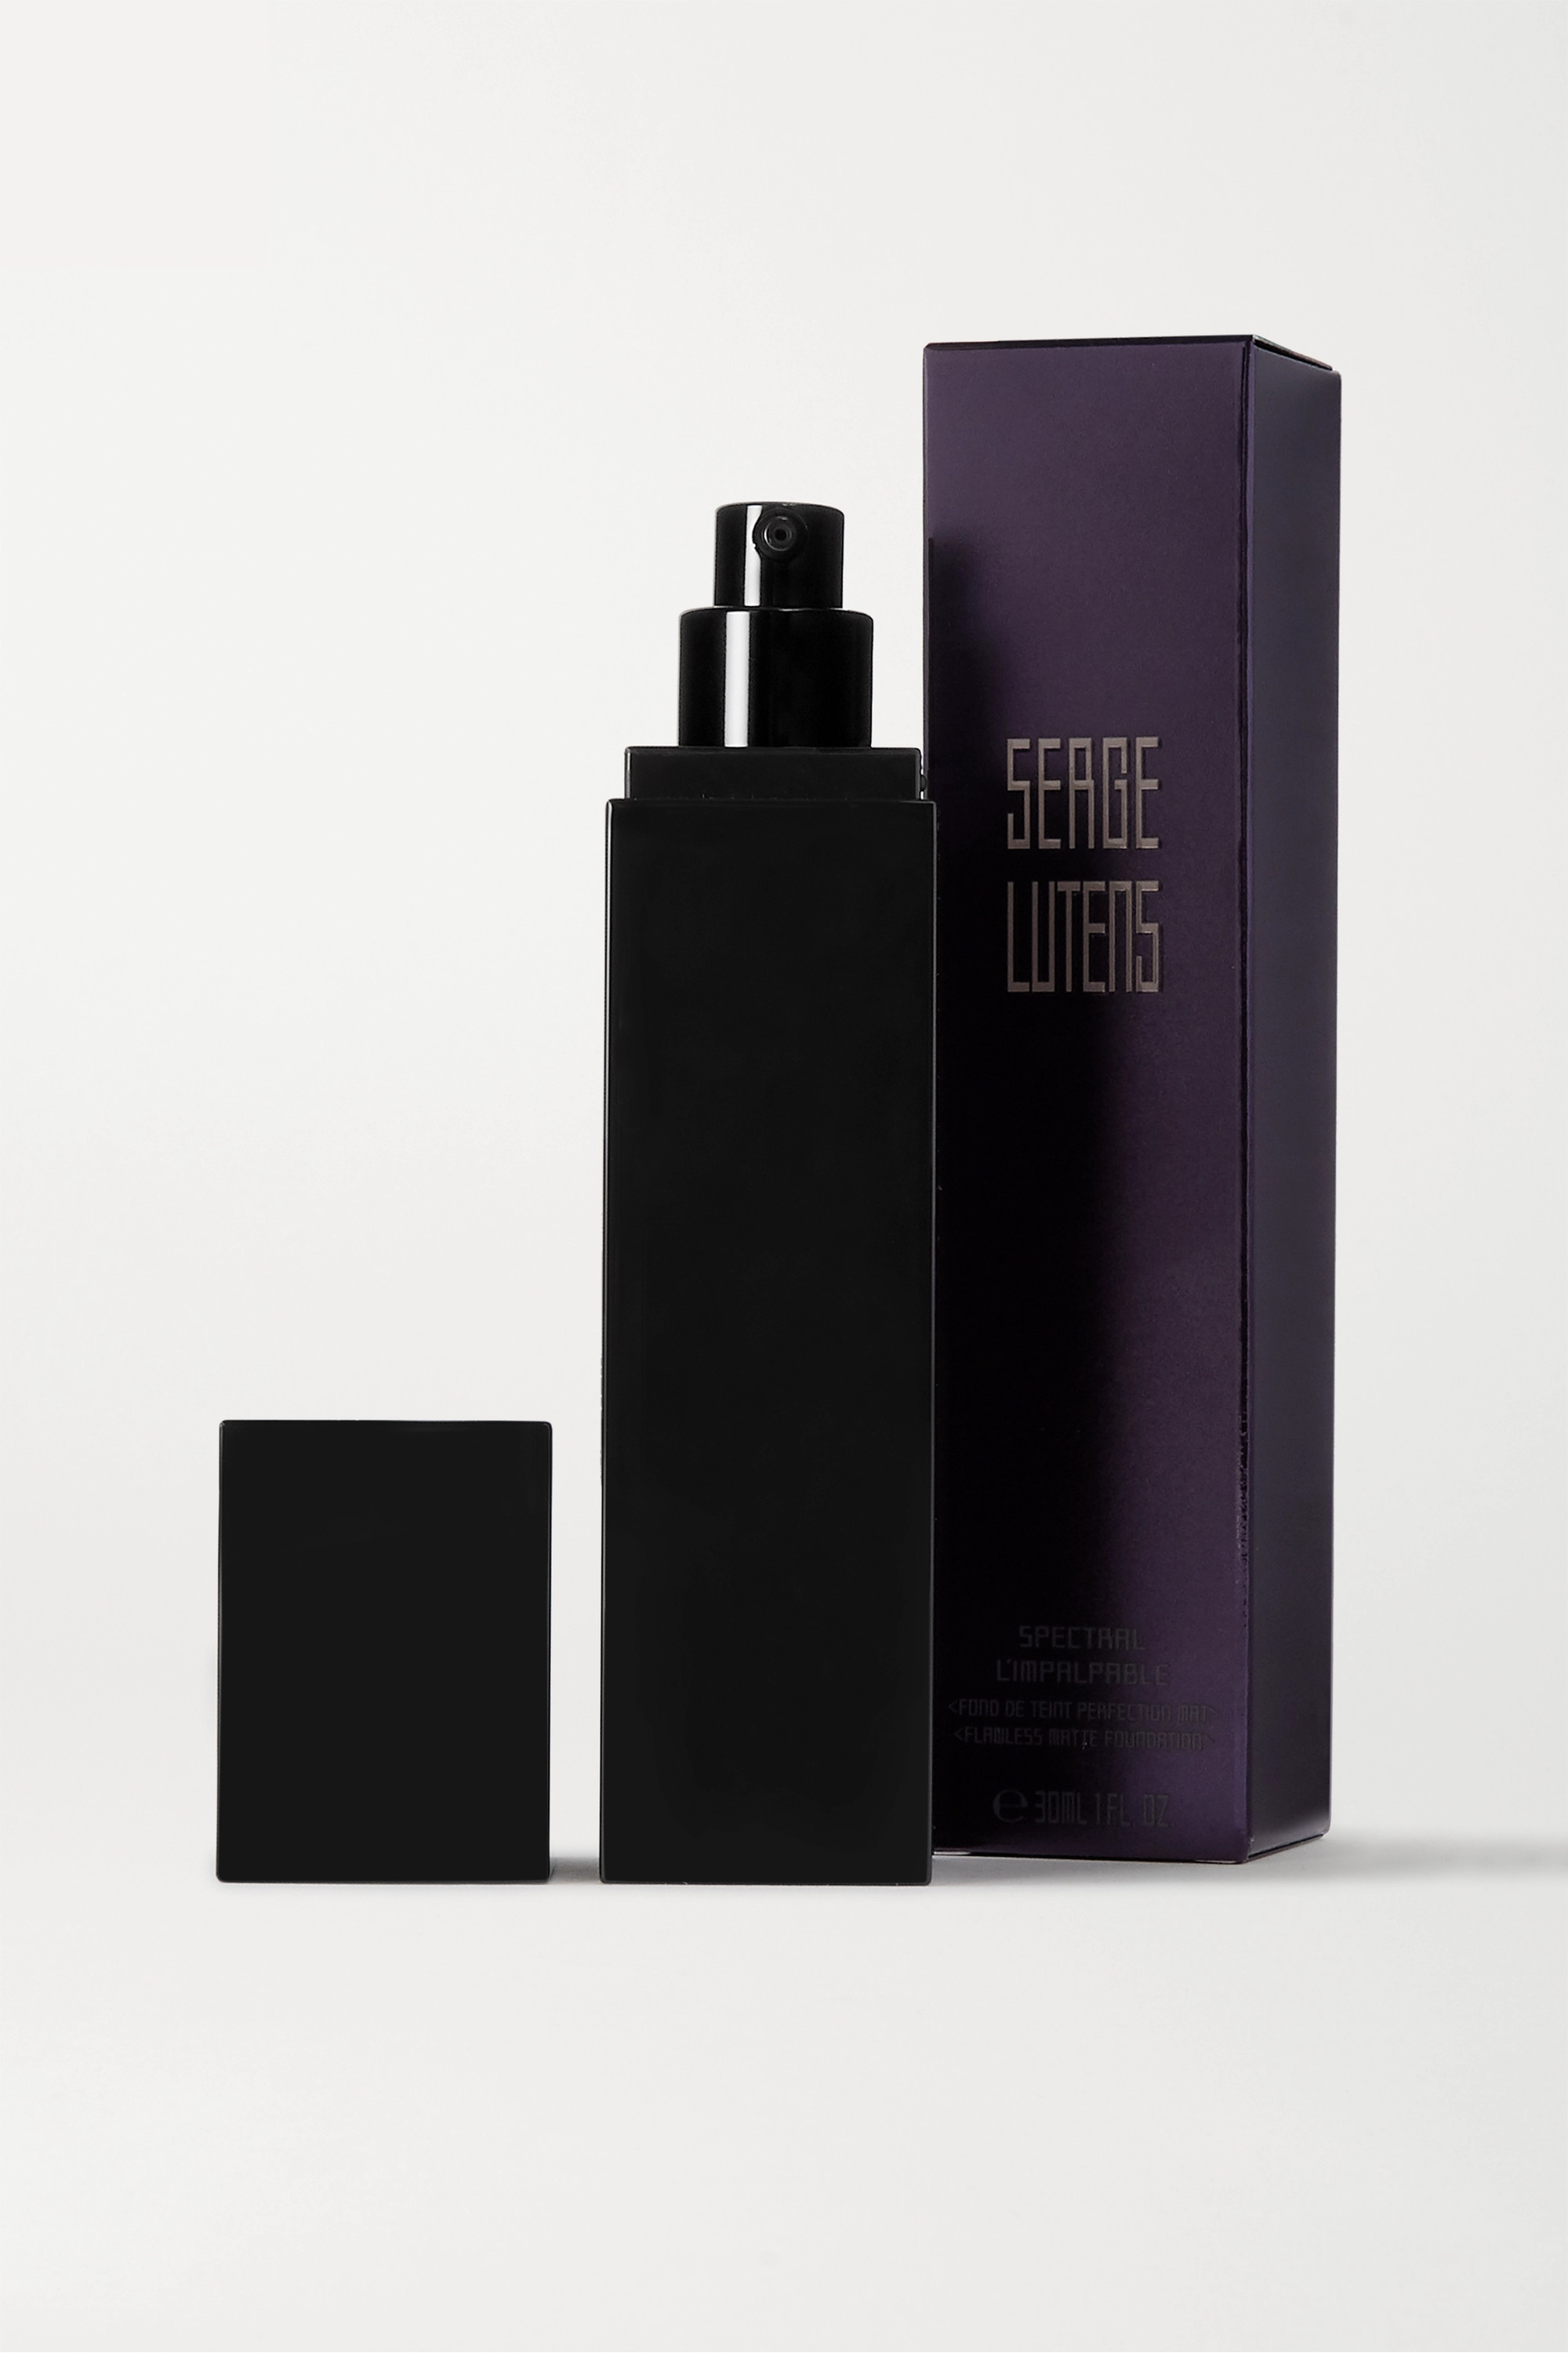 Serge Lutens Spectral L'Impalpable Foundation - I10, 30ml